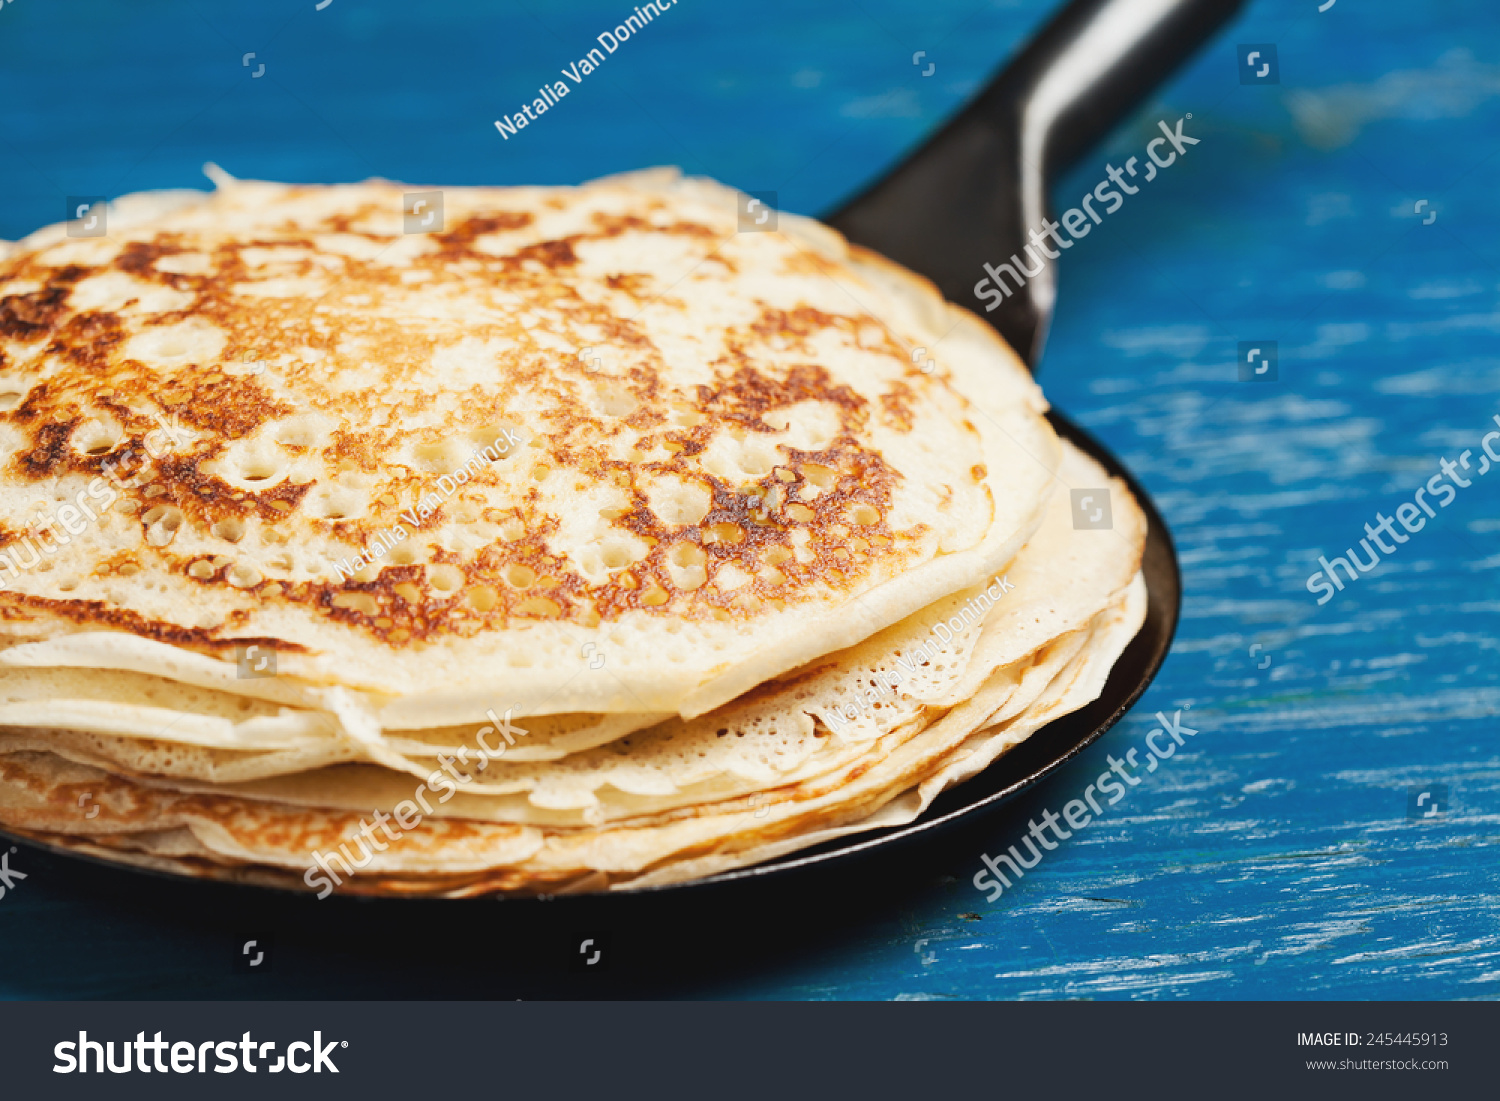 Staple of yeast pancakes traditional for Russian pancake week